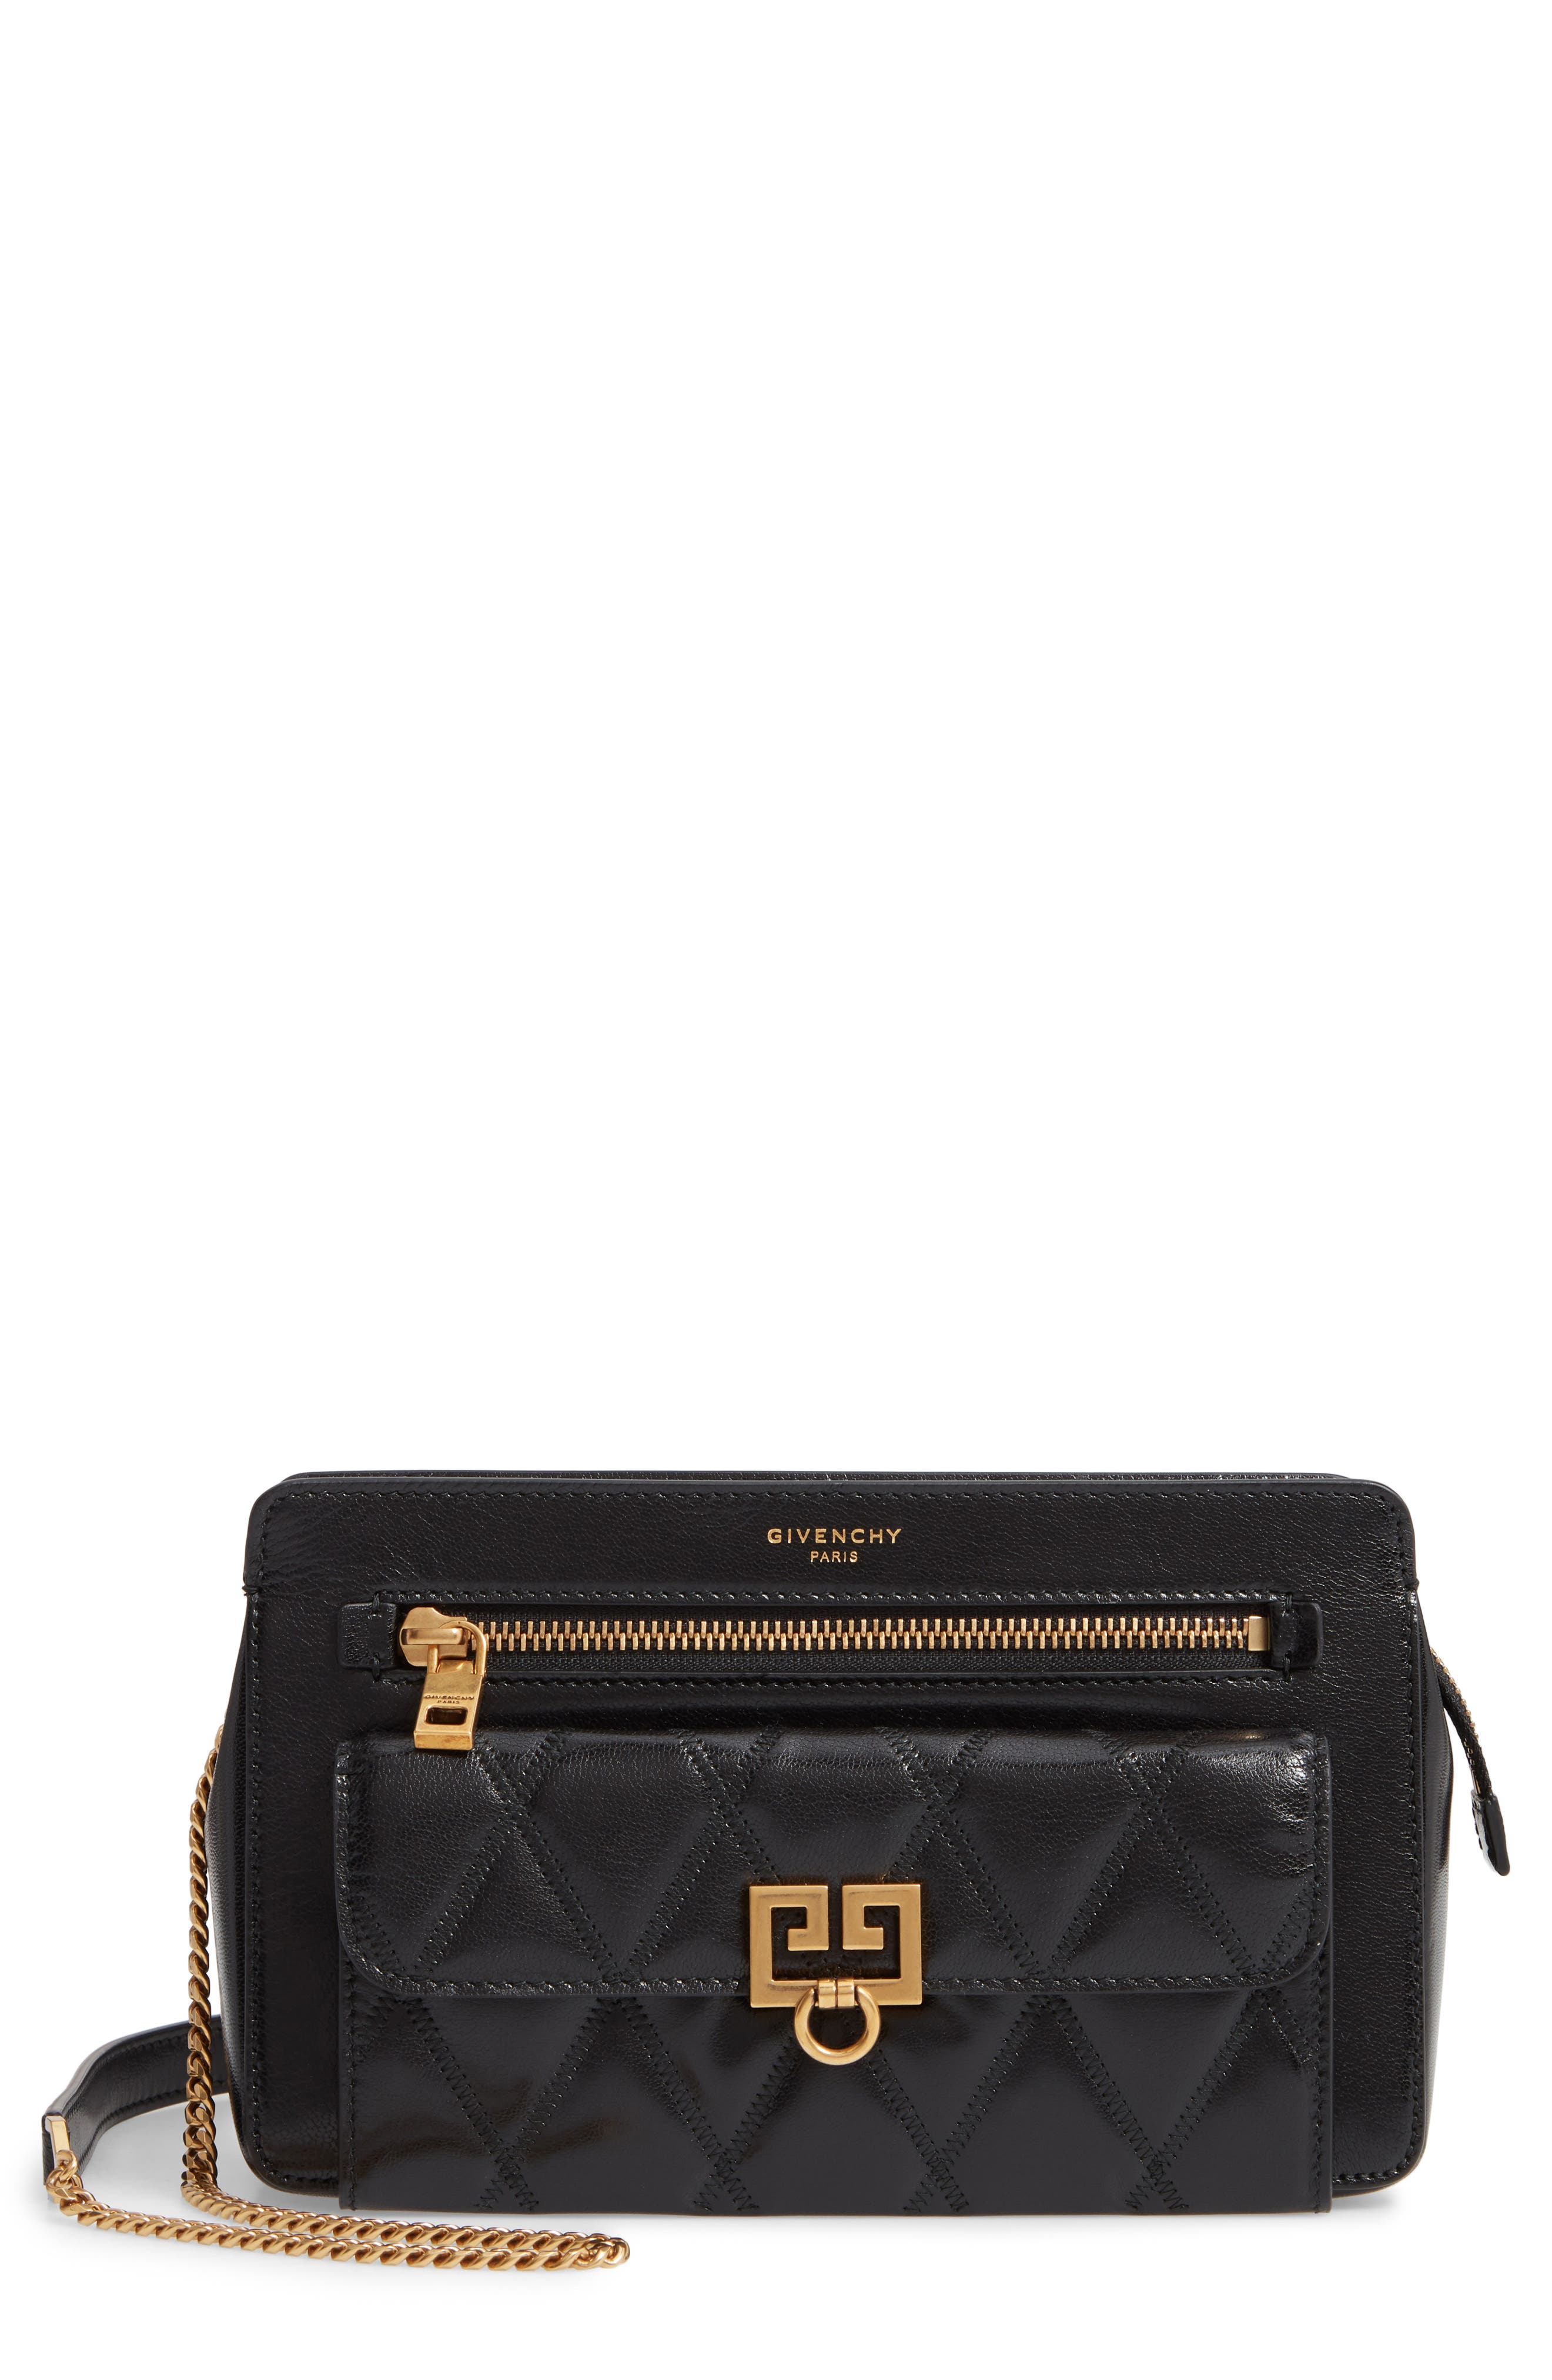 Diamond Quilted Leather Crossbody Bag,                         Main,                         color, BLACK